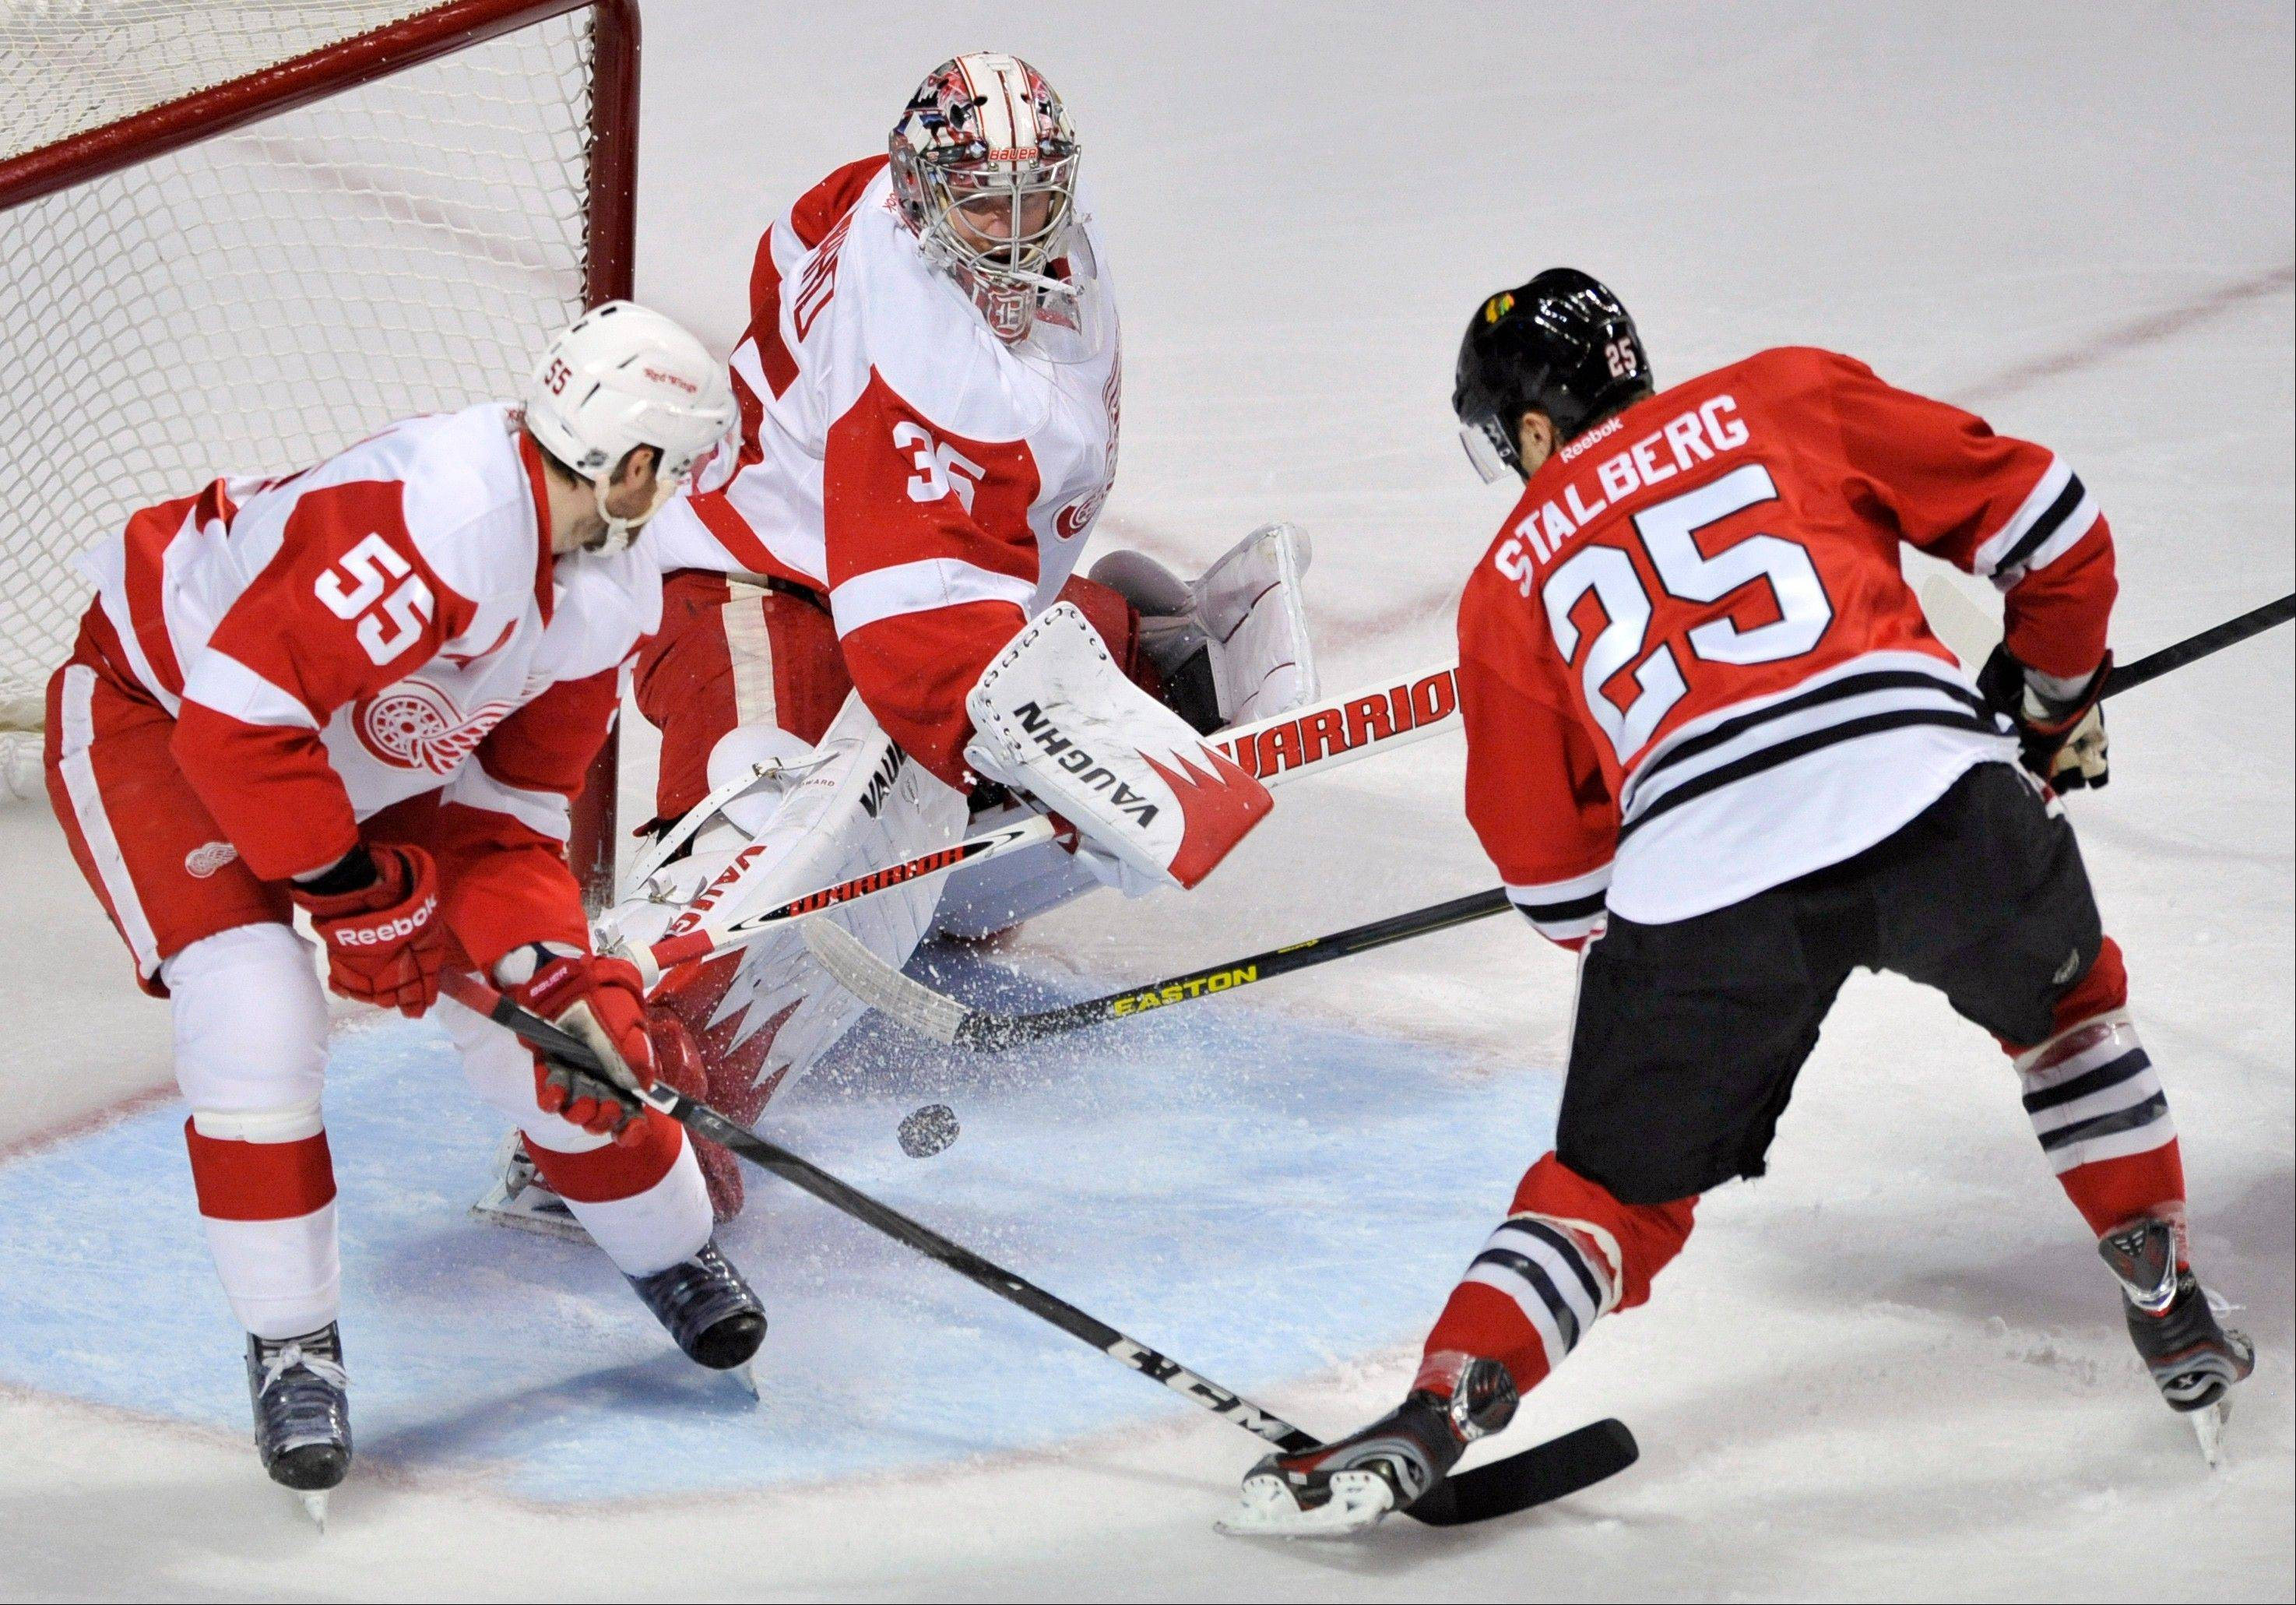 Chicago Blackhawks' Viktor Stalberg (25), of Sweden, shoots on-goal against Detroit Red Wings' Niklas Kronwall (55), also of Sweden, and goalie Jimmy Howard during the first period of an NHL hockey game in Chicago, Friday, April 12, 2013.